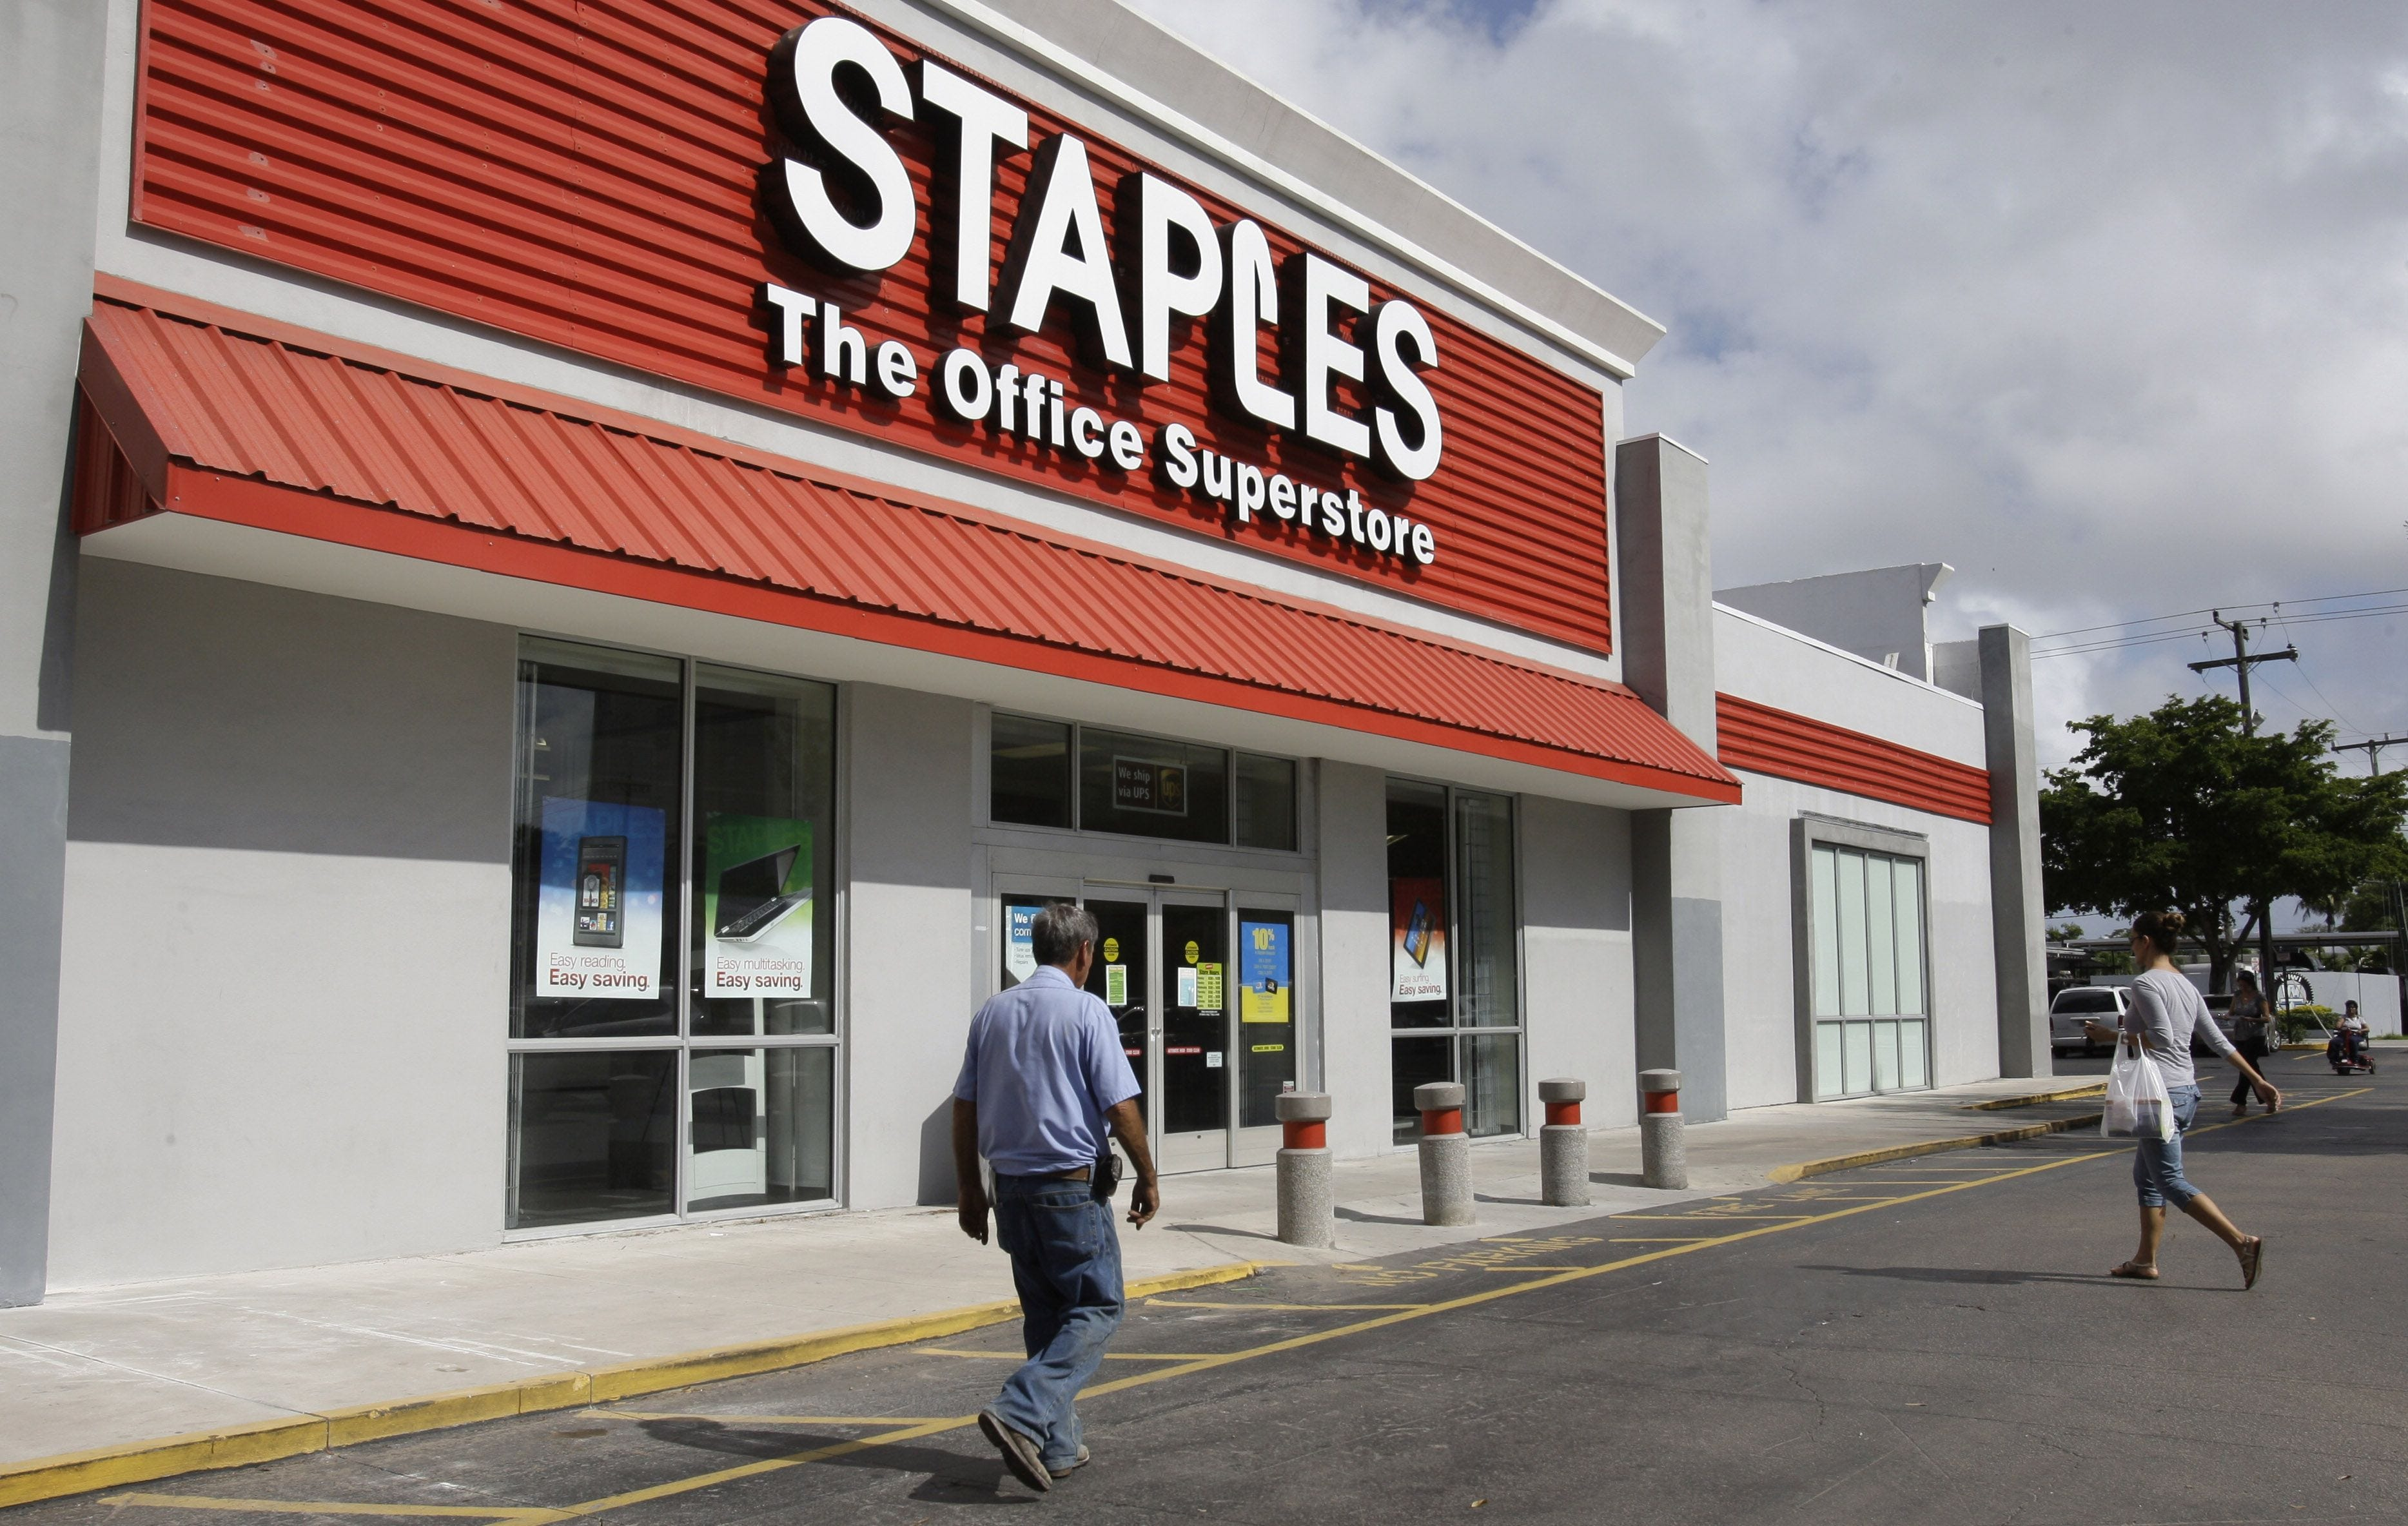 Report: Staples could be sold to private equity investors